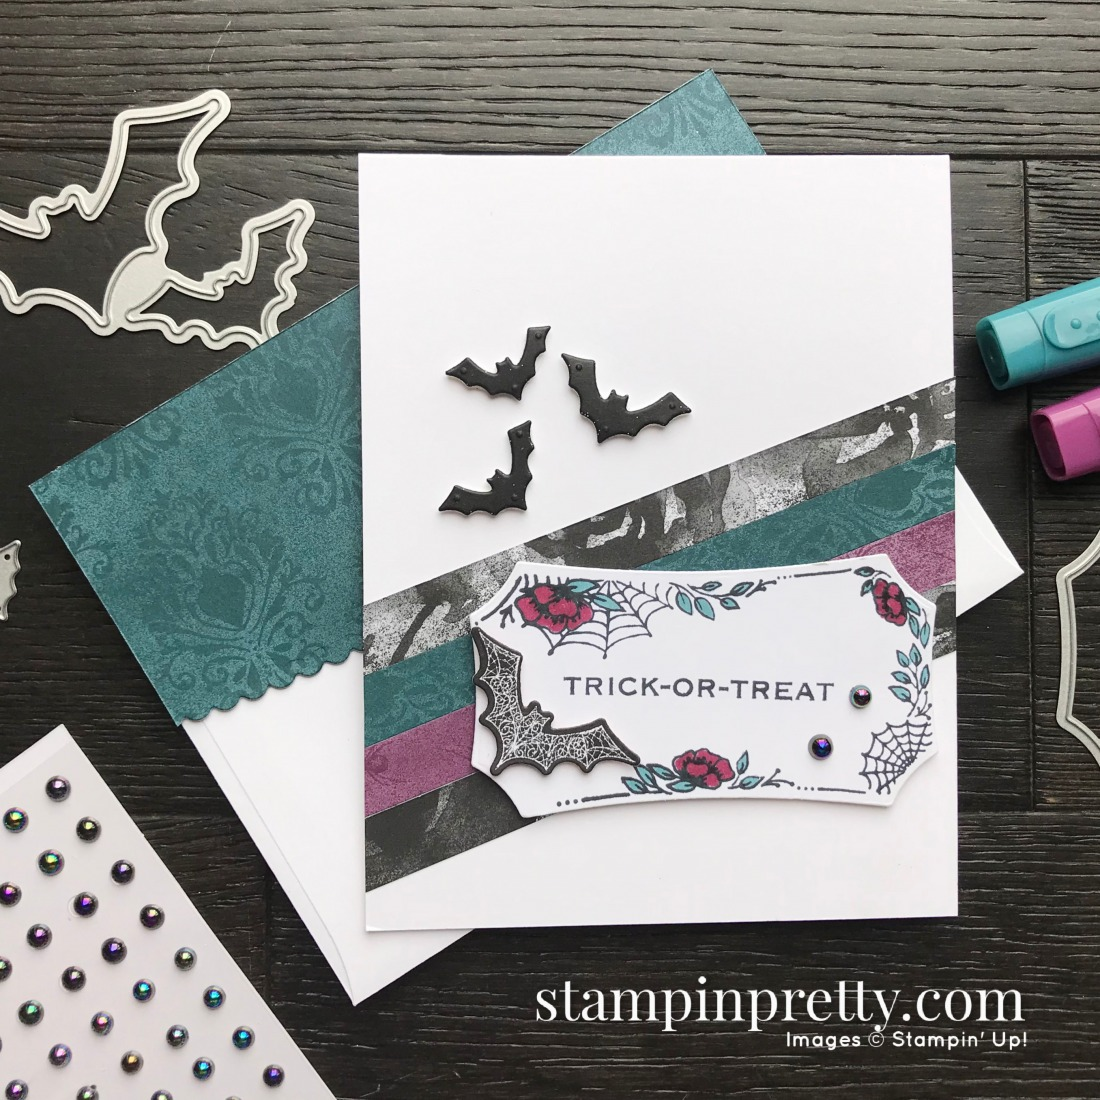 Stampin Up Halloween Card Ideas 2020 SNEAK PEEK! Stampin' Up! Magic In This Night Suite! | Stampin' Pretty